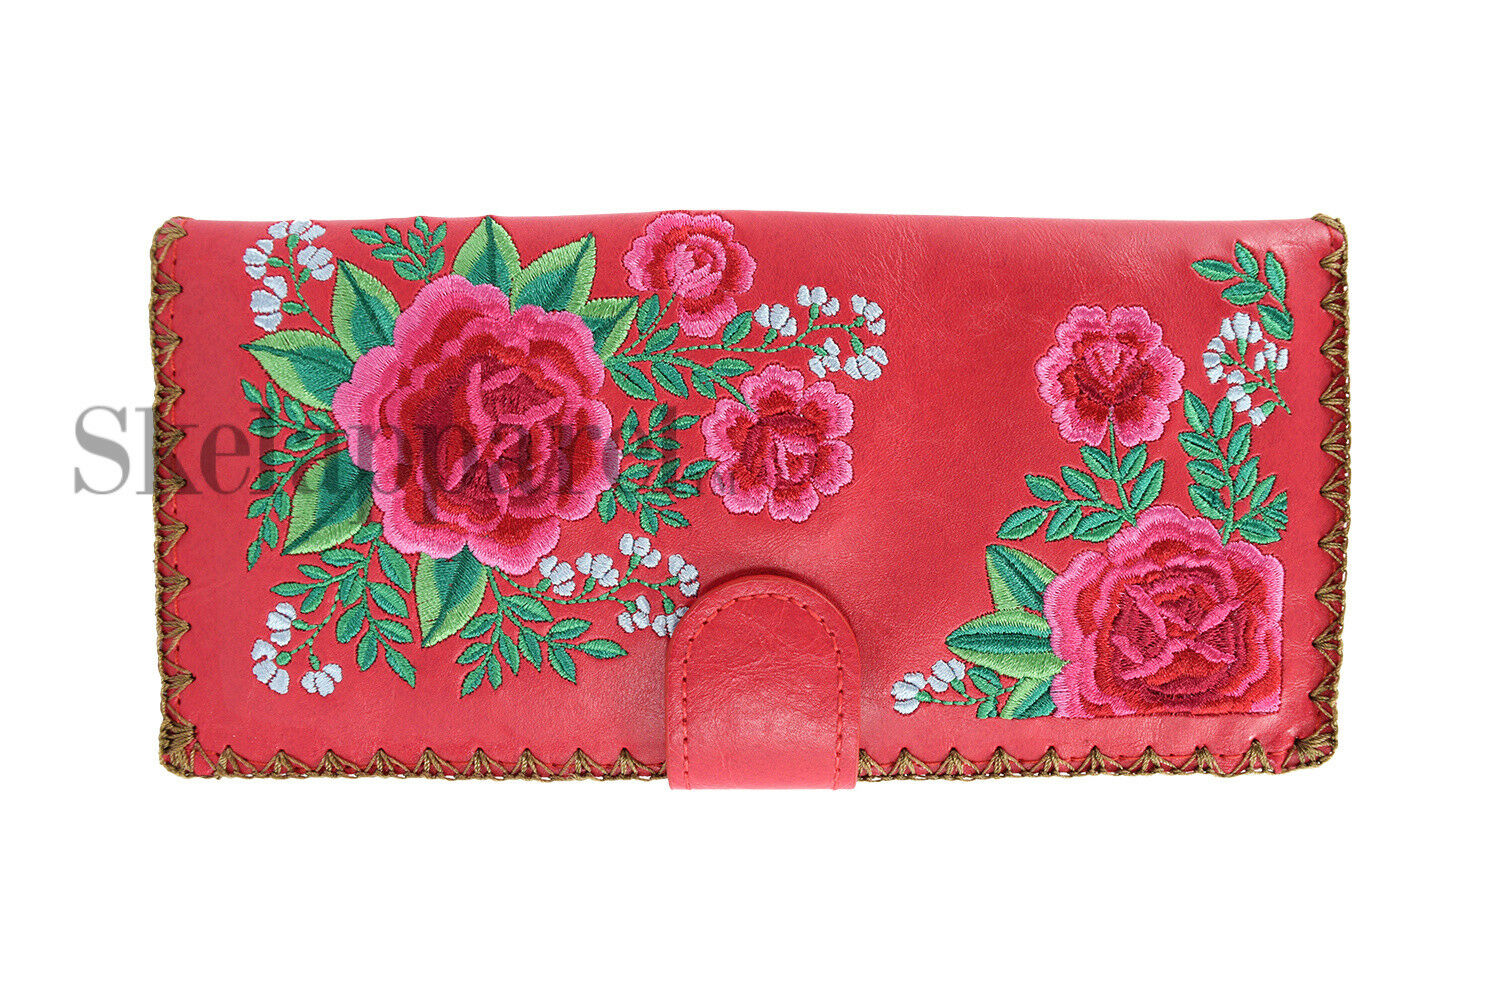 Lavishy Wallet - Pink Roses Bouquet Floral Embroidery wallet